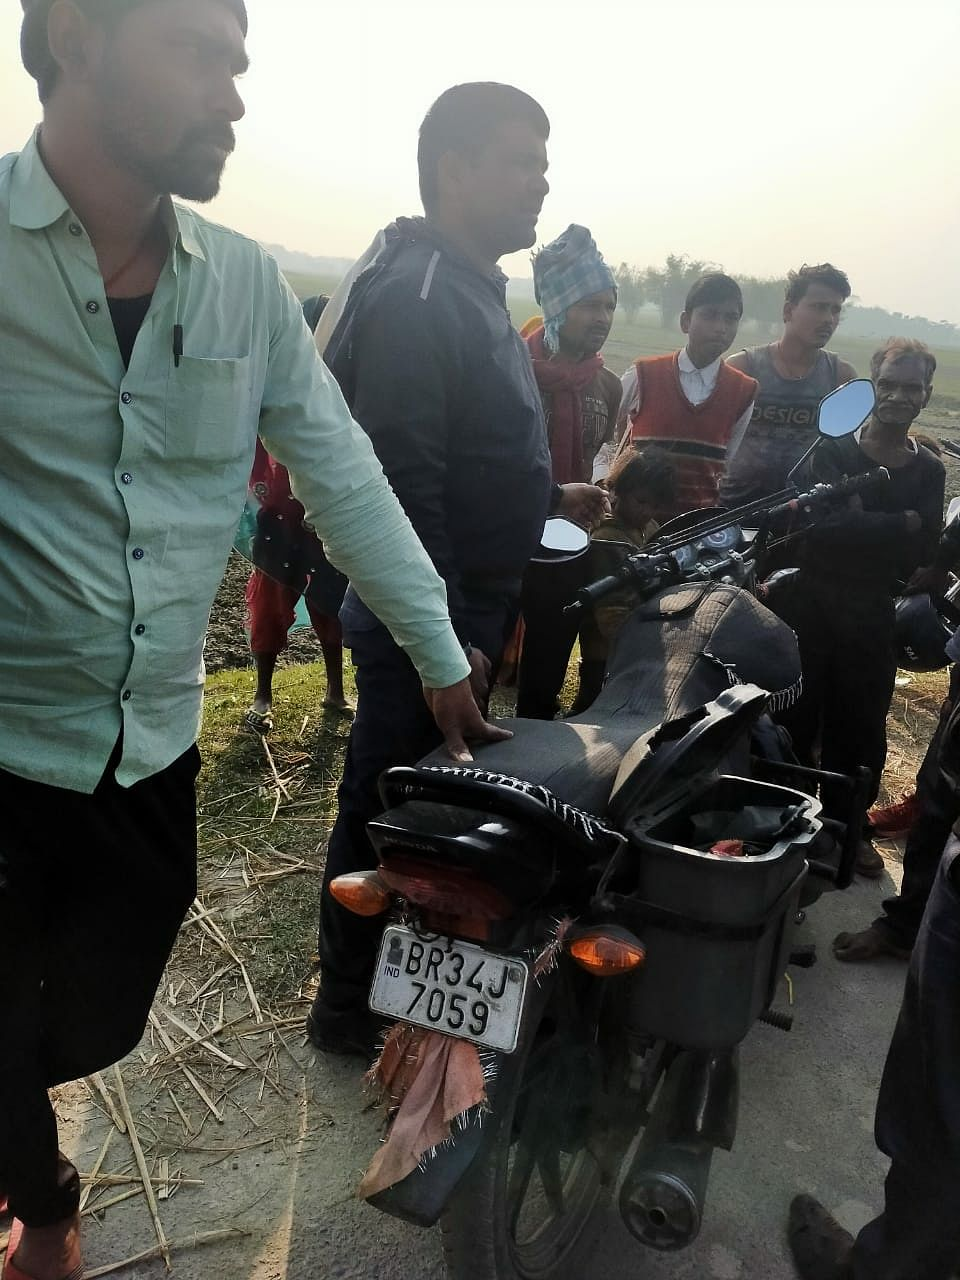 In Saharsa, criminals rob 40 thousand from Bandhan Bank personnel on the strength of arms